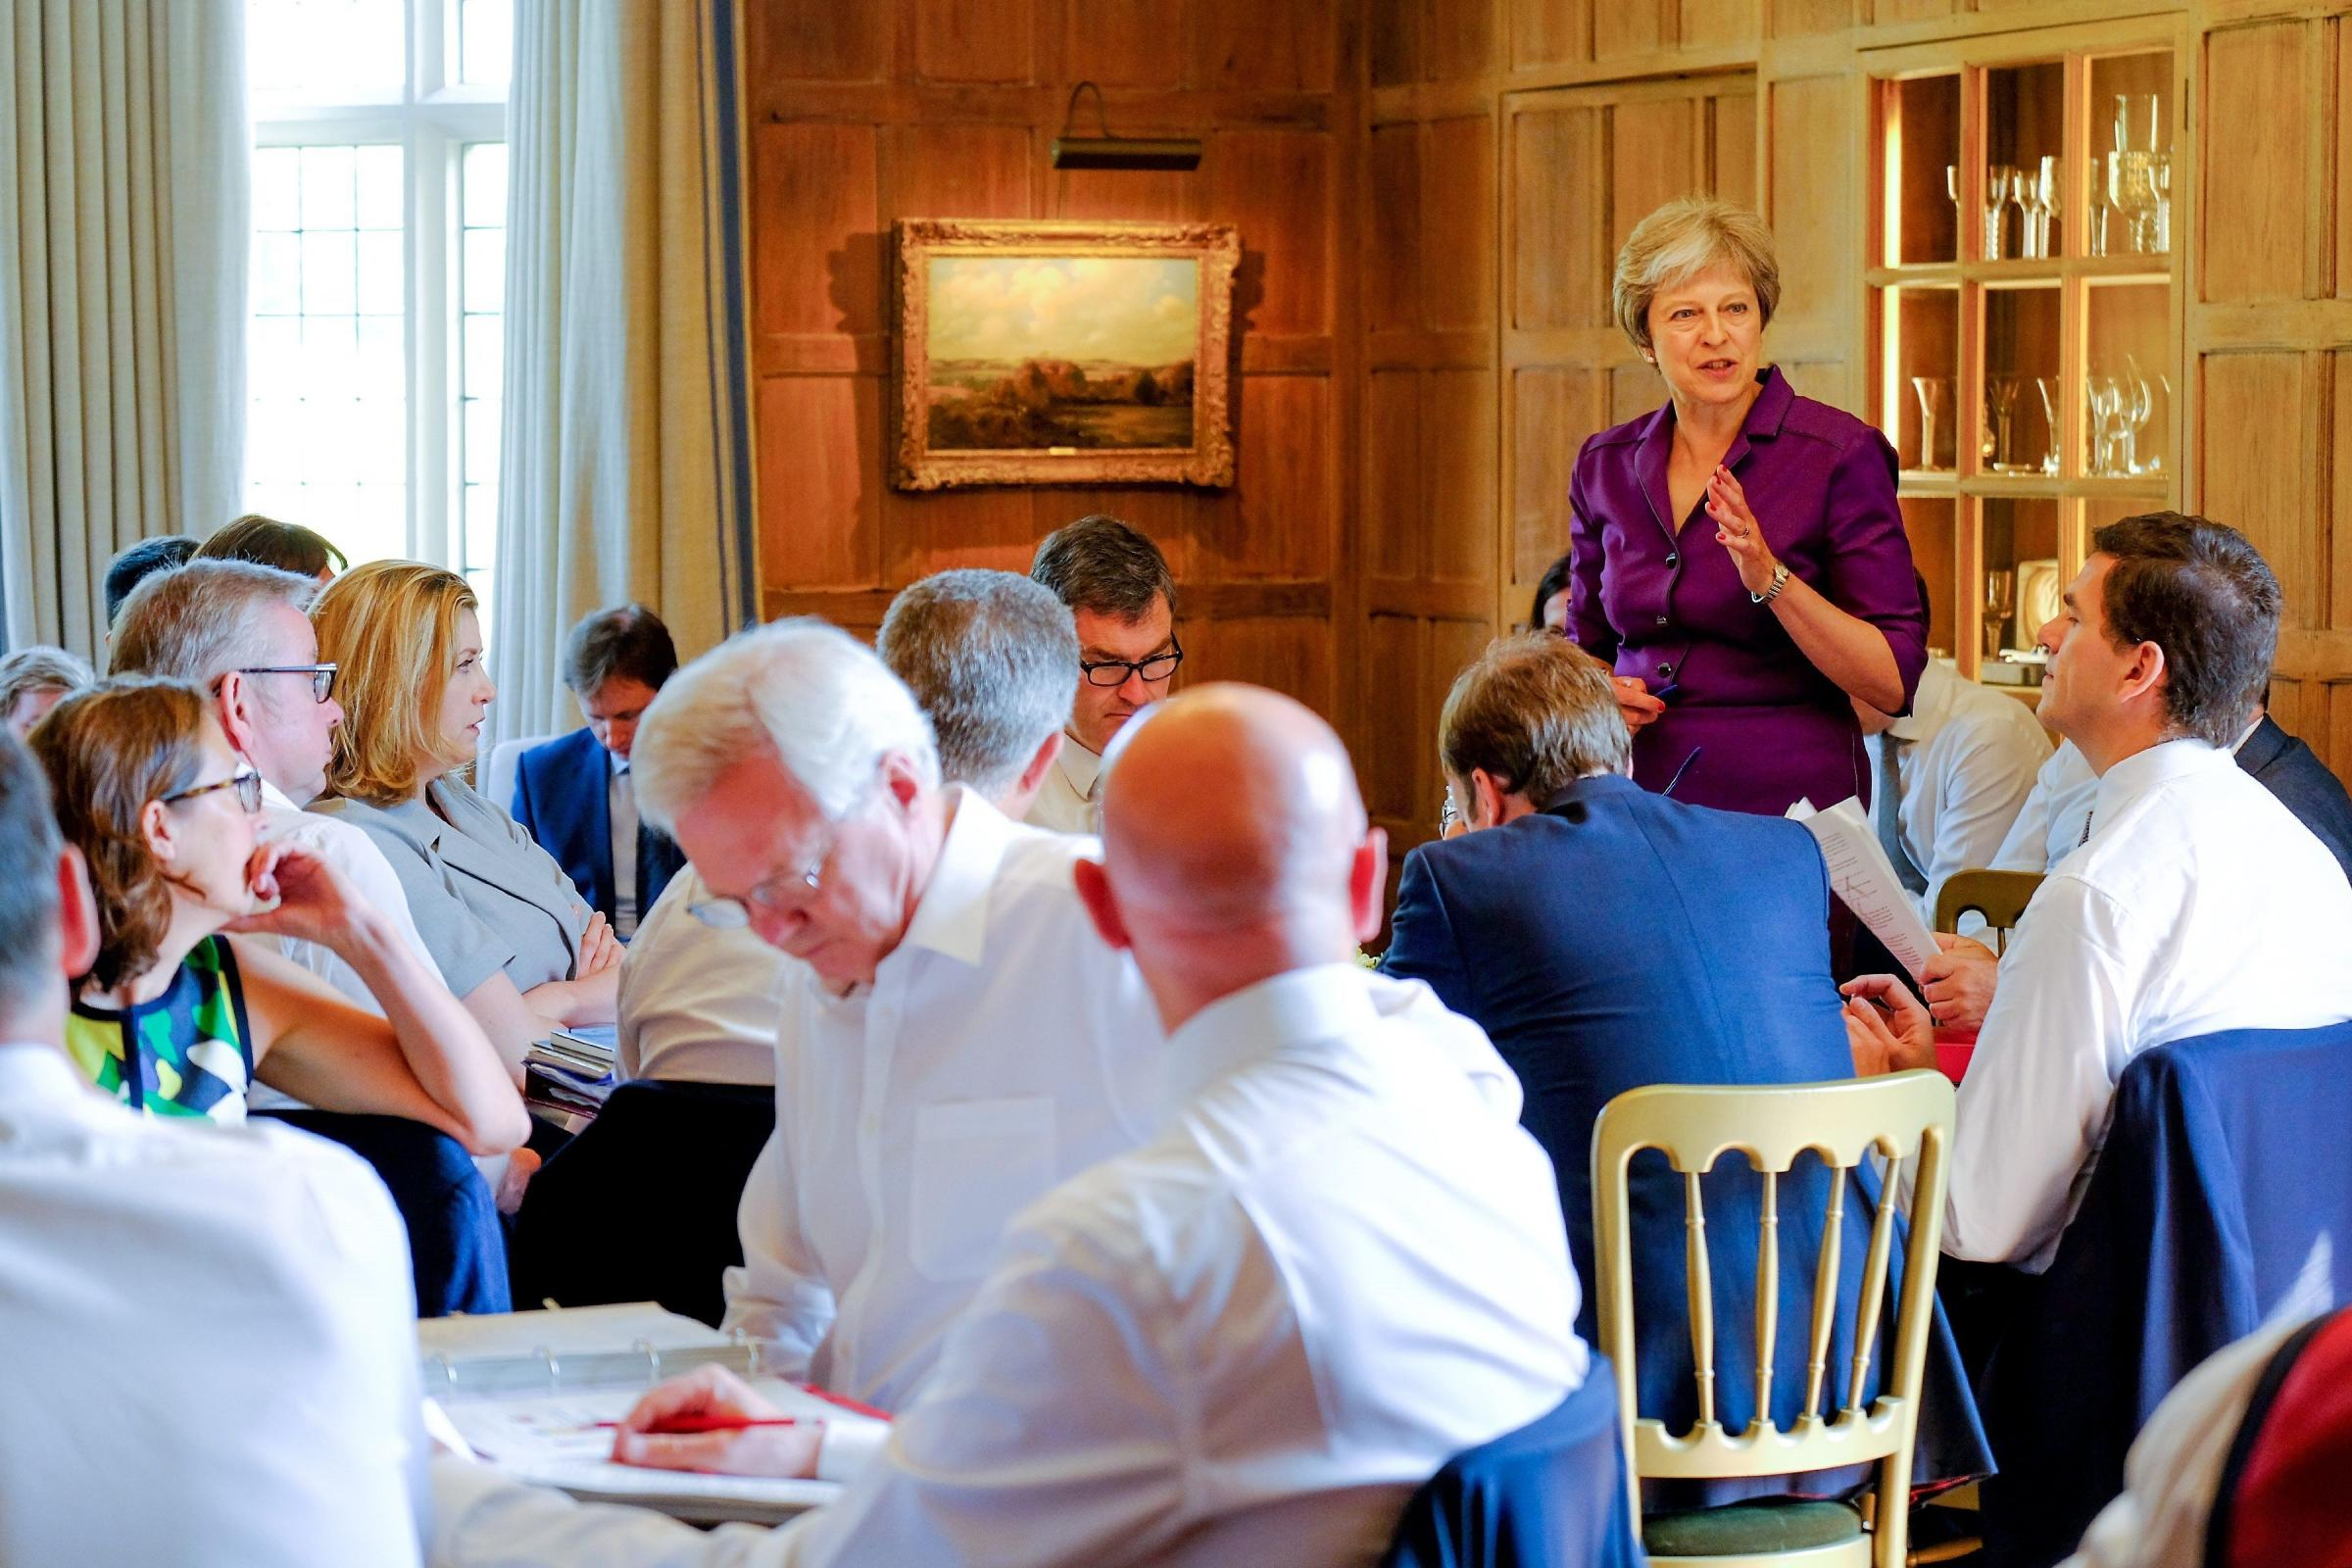 Prime Minister Theresa May speaks during a cabinet meeting at Chequers, the Prime Minister's official country residence near Ellesborough in Buckinghamshire.